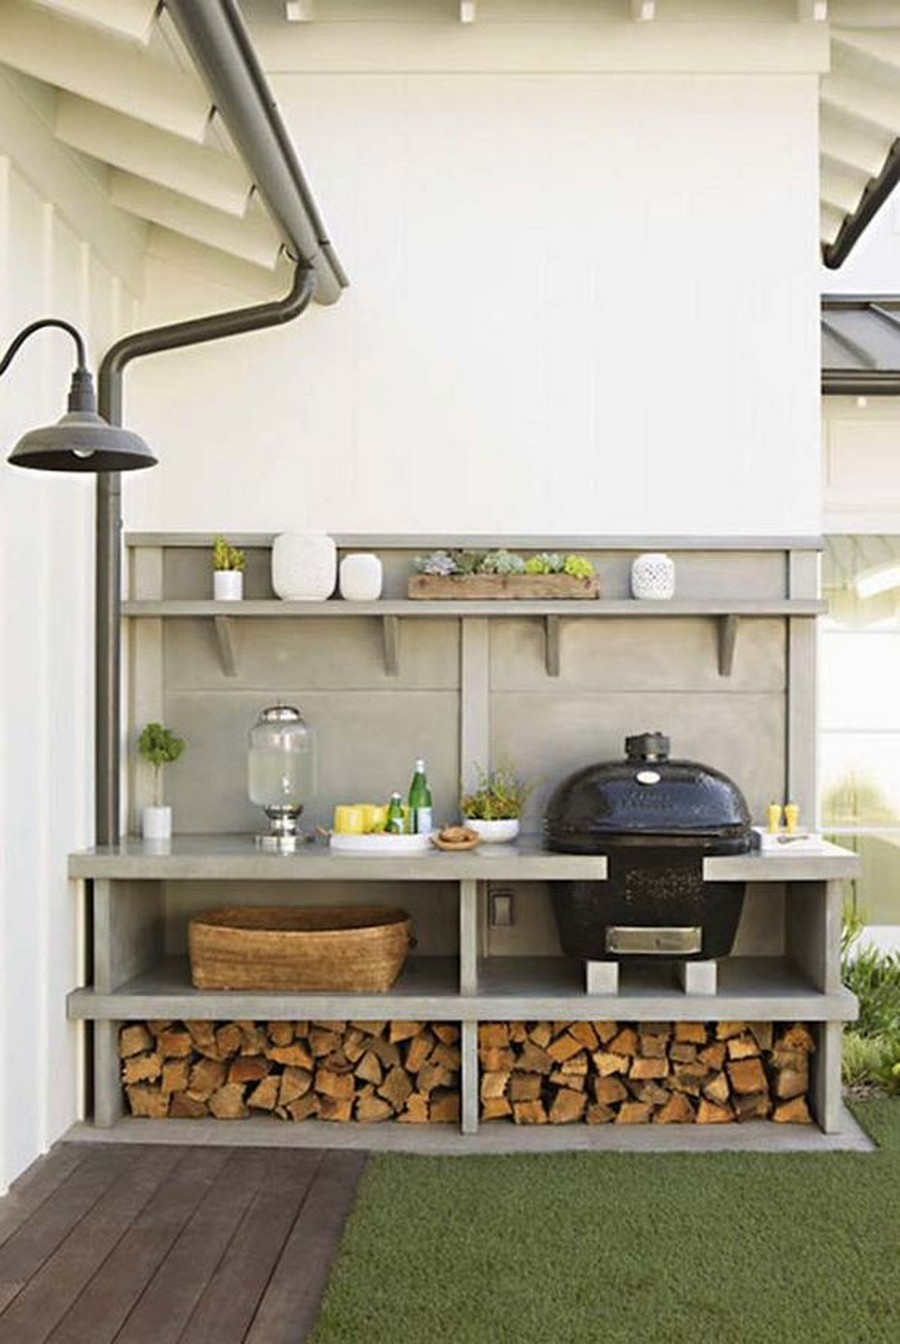 Outdoor Kitchen Design Ideas 10 Outdoor Kitchen Design Ideas Perfect For Your Backyard 10 Outdoor Kitchen Design Ideas Perfect For Your Backyard 5